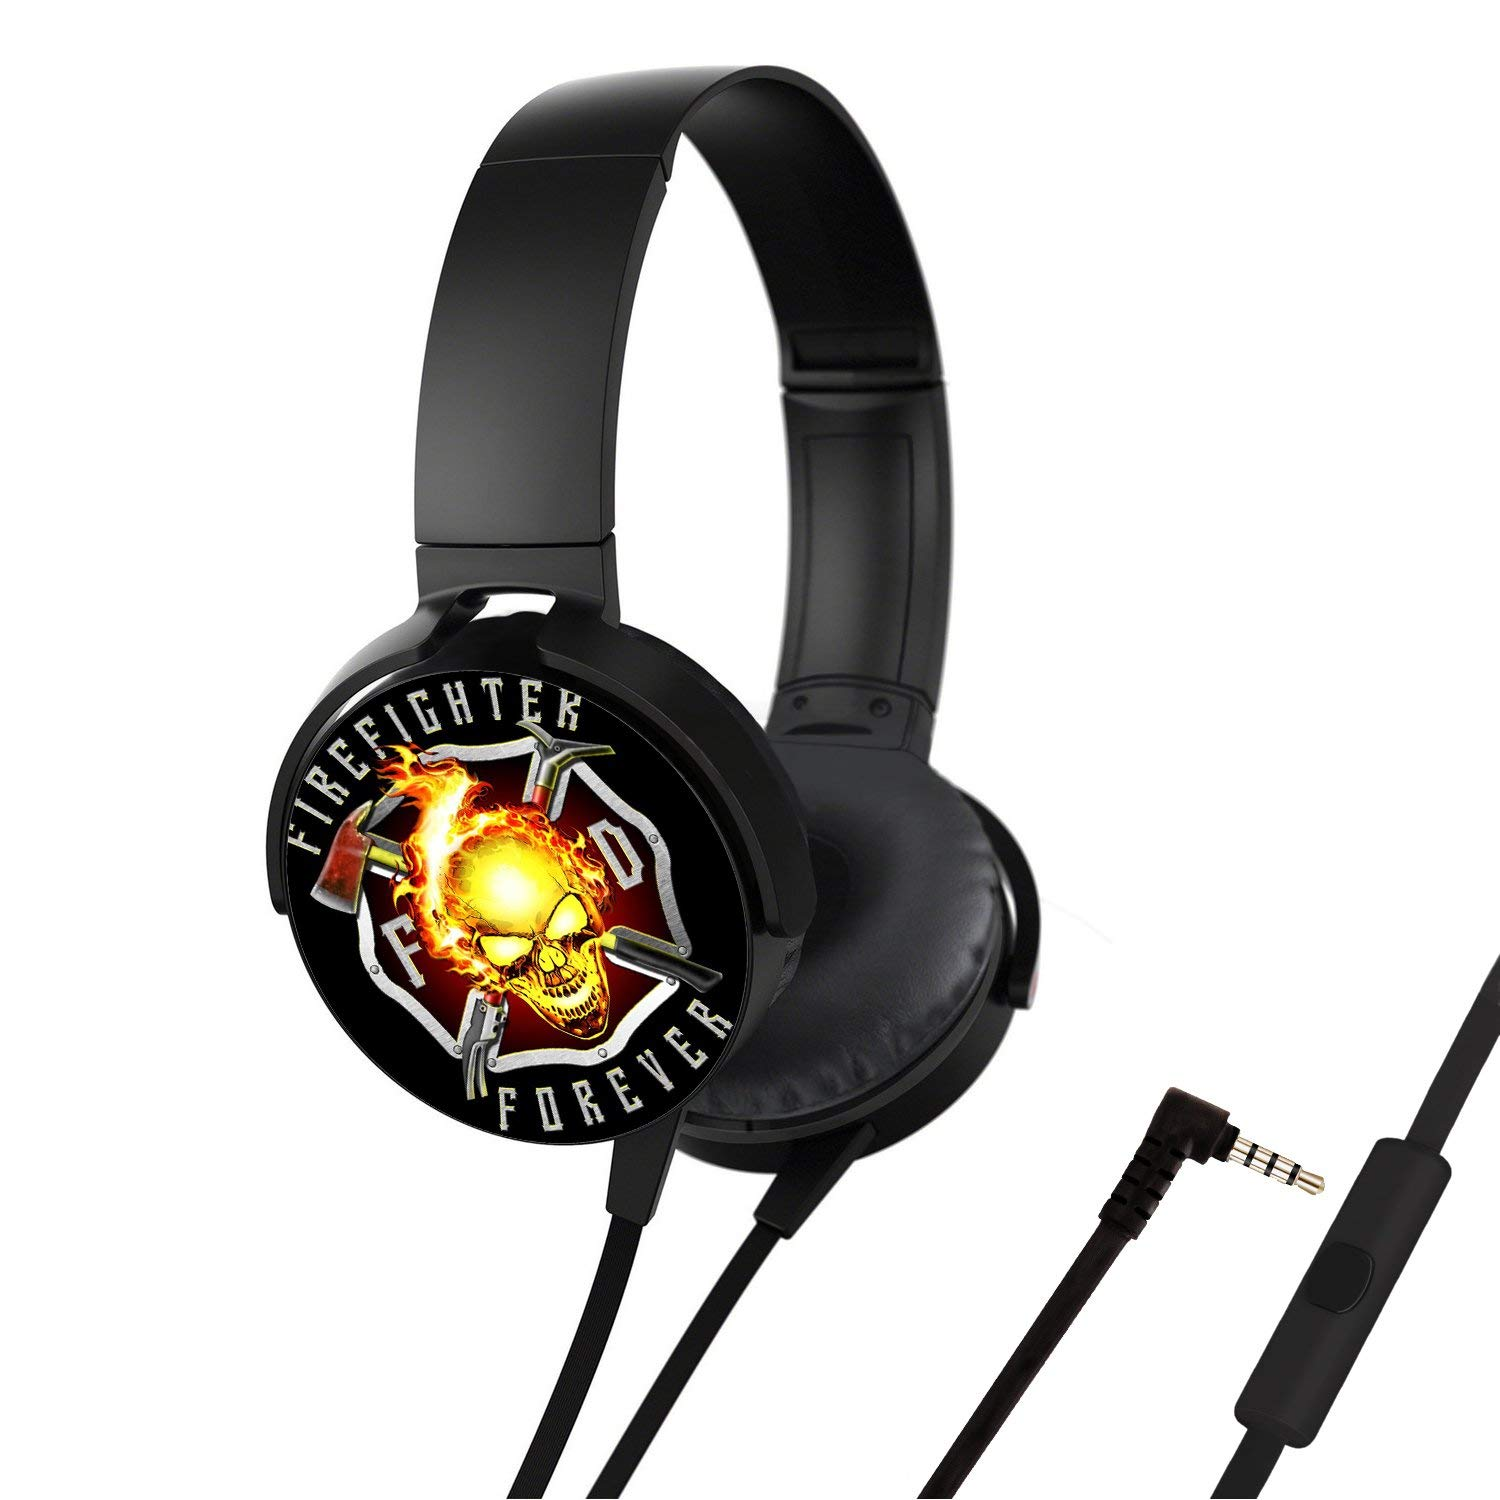 Portable Headsets, Bass Stereo Wired Over Ear Headphones Build-in Mic for Smartphones iPhone PC Laptop, Customized Design with Soft Earmuff, Noise Cancellation - Flaming Skulls